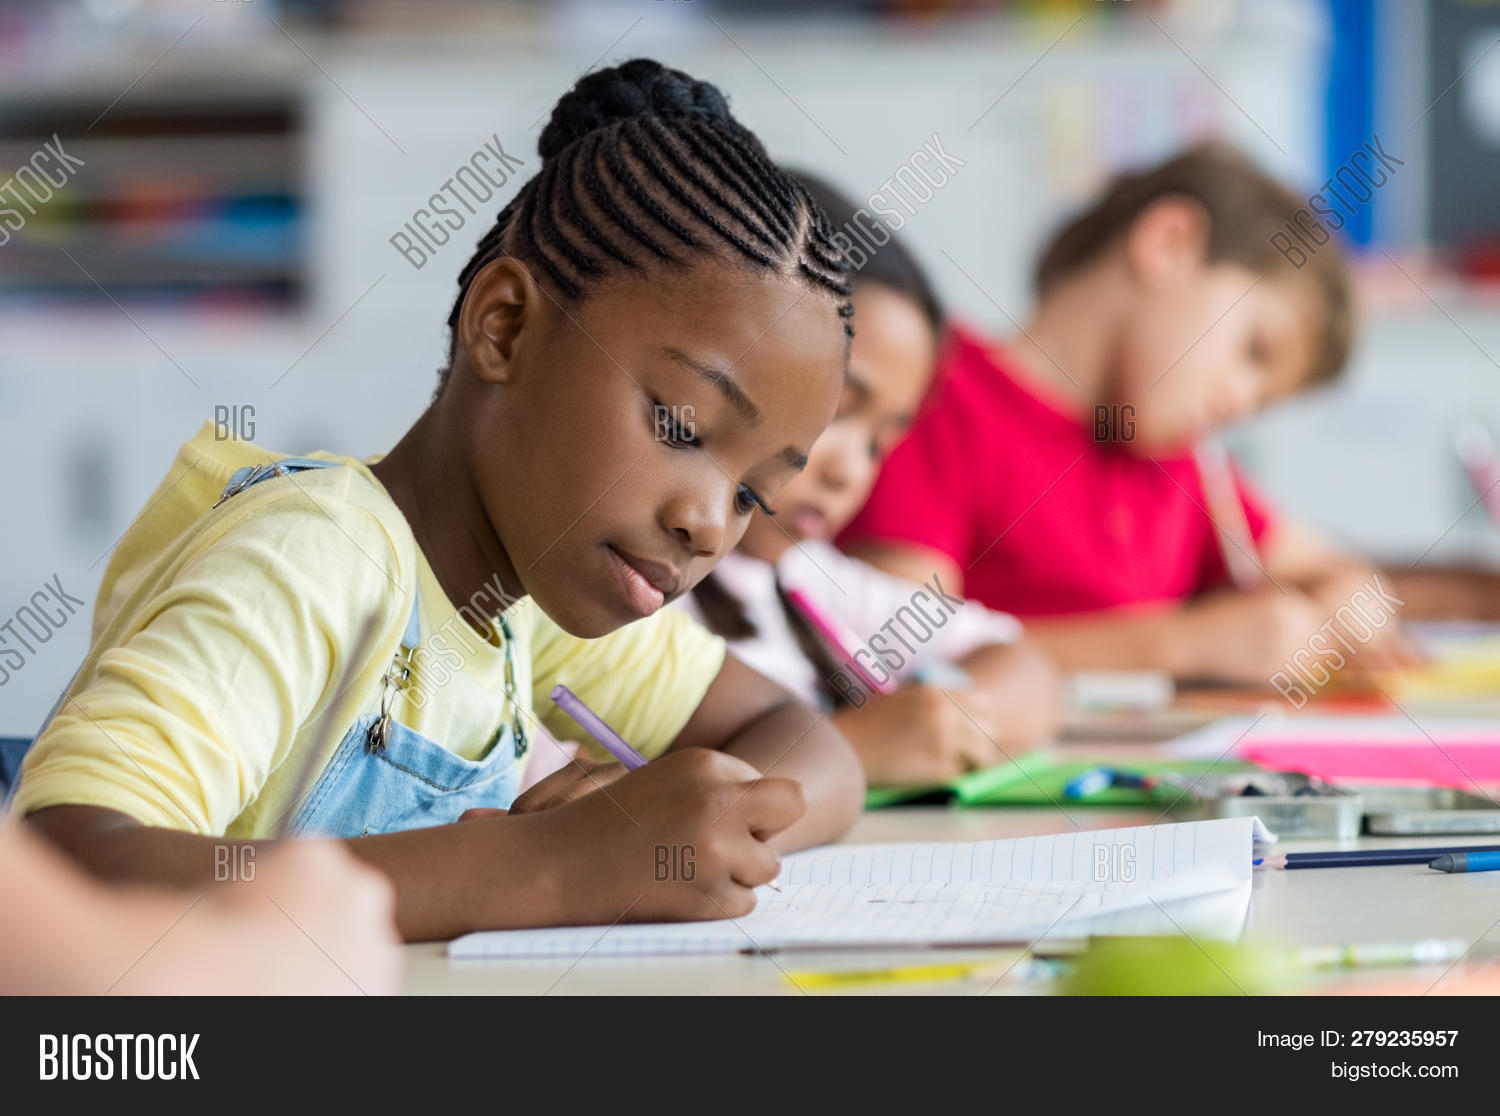 absorbed,academic,african,african girl,american,black,child,children,class,classmate,classroom,classroom students,concentrated,desk,education,elementary,elementary school,elementary students,girl,kid,kids,knowledge,learn,lesson,lessons,multi ethnic group,notebook,people in a row,primary,pupil,scholar,school,school children,school girl,schoolchild,schoolgirl,sitting,student,students,study,studying,test,writing,writing notes,writing paper,young